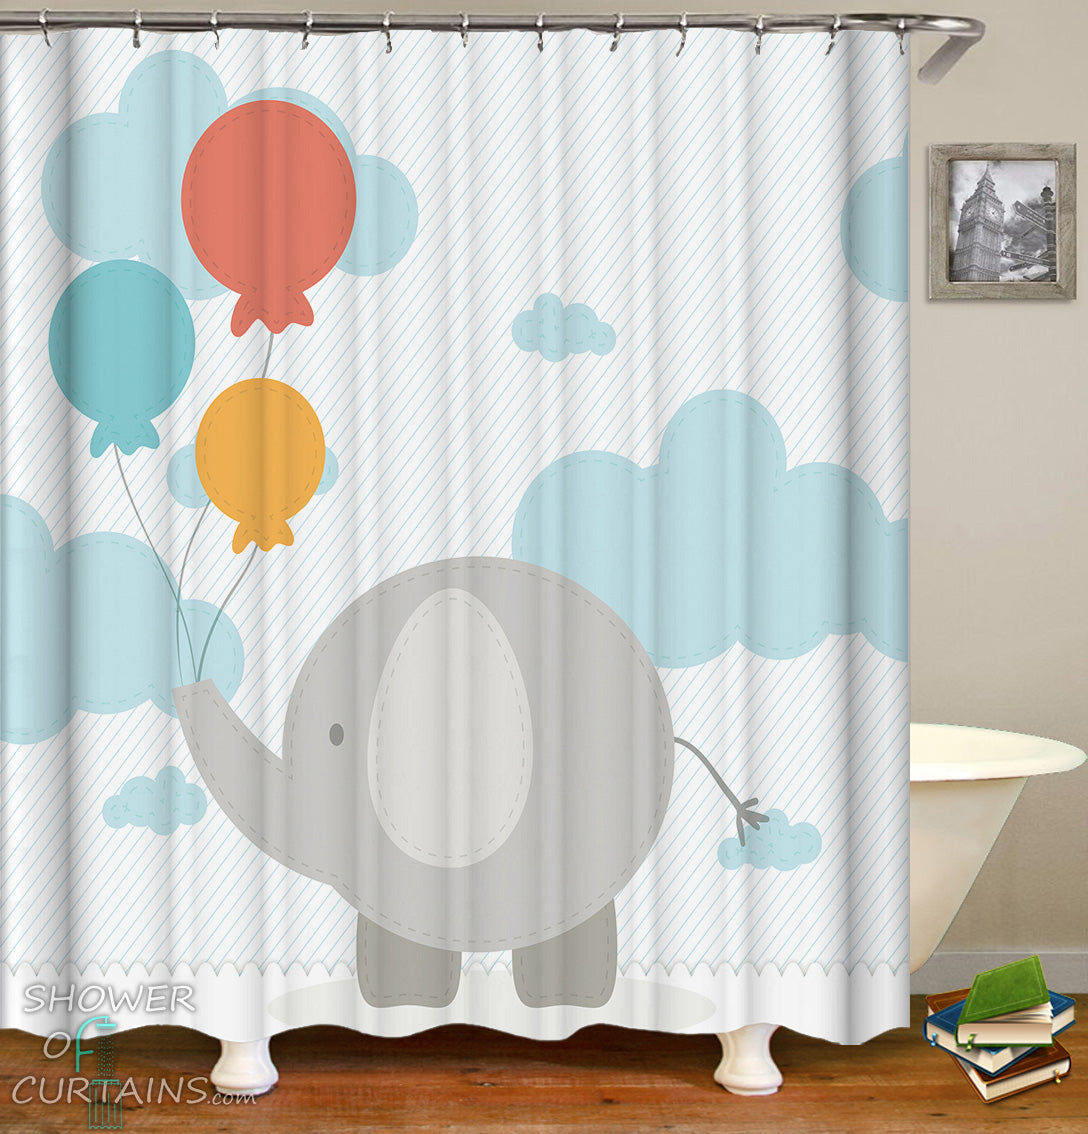 Shower Curtains Kids Elephant Character Shower Of Curtains